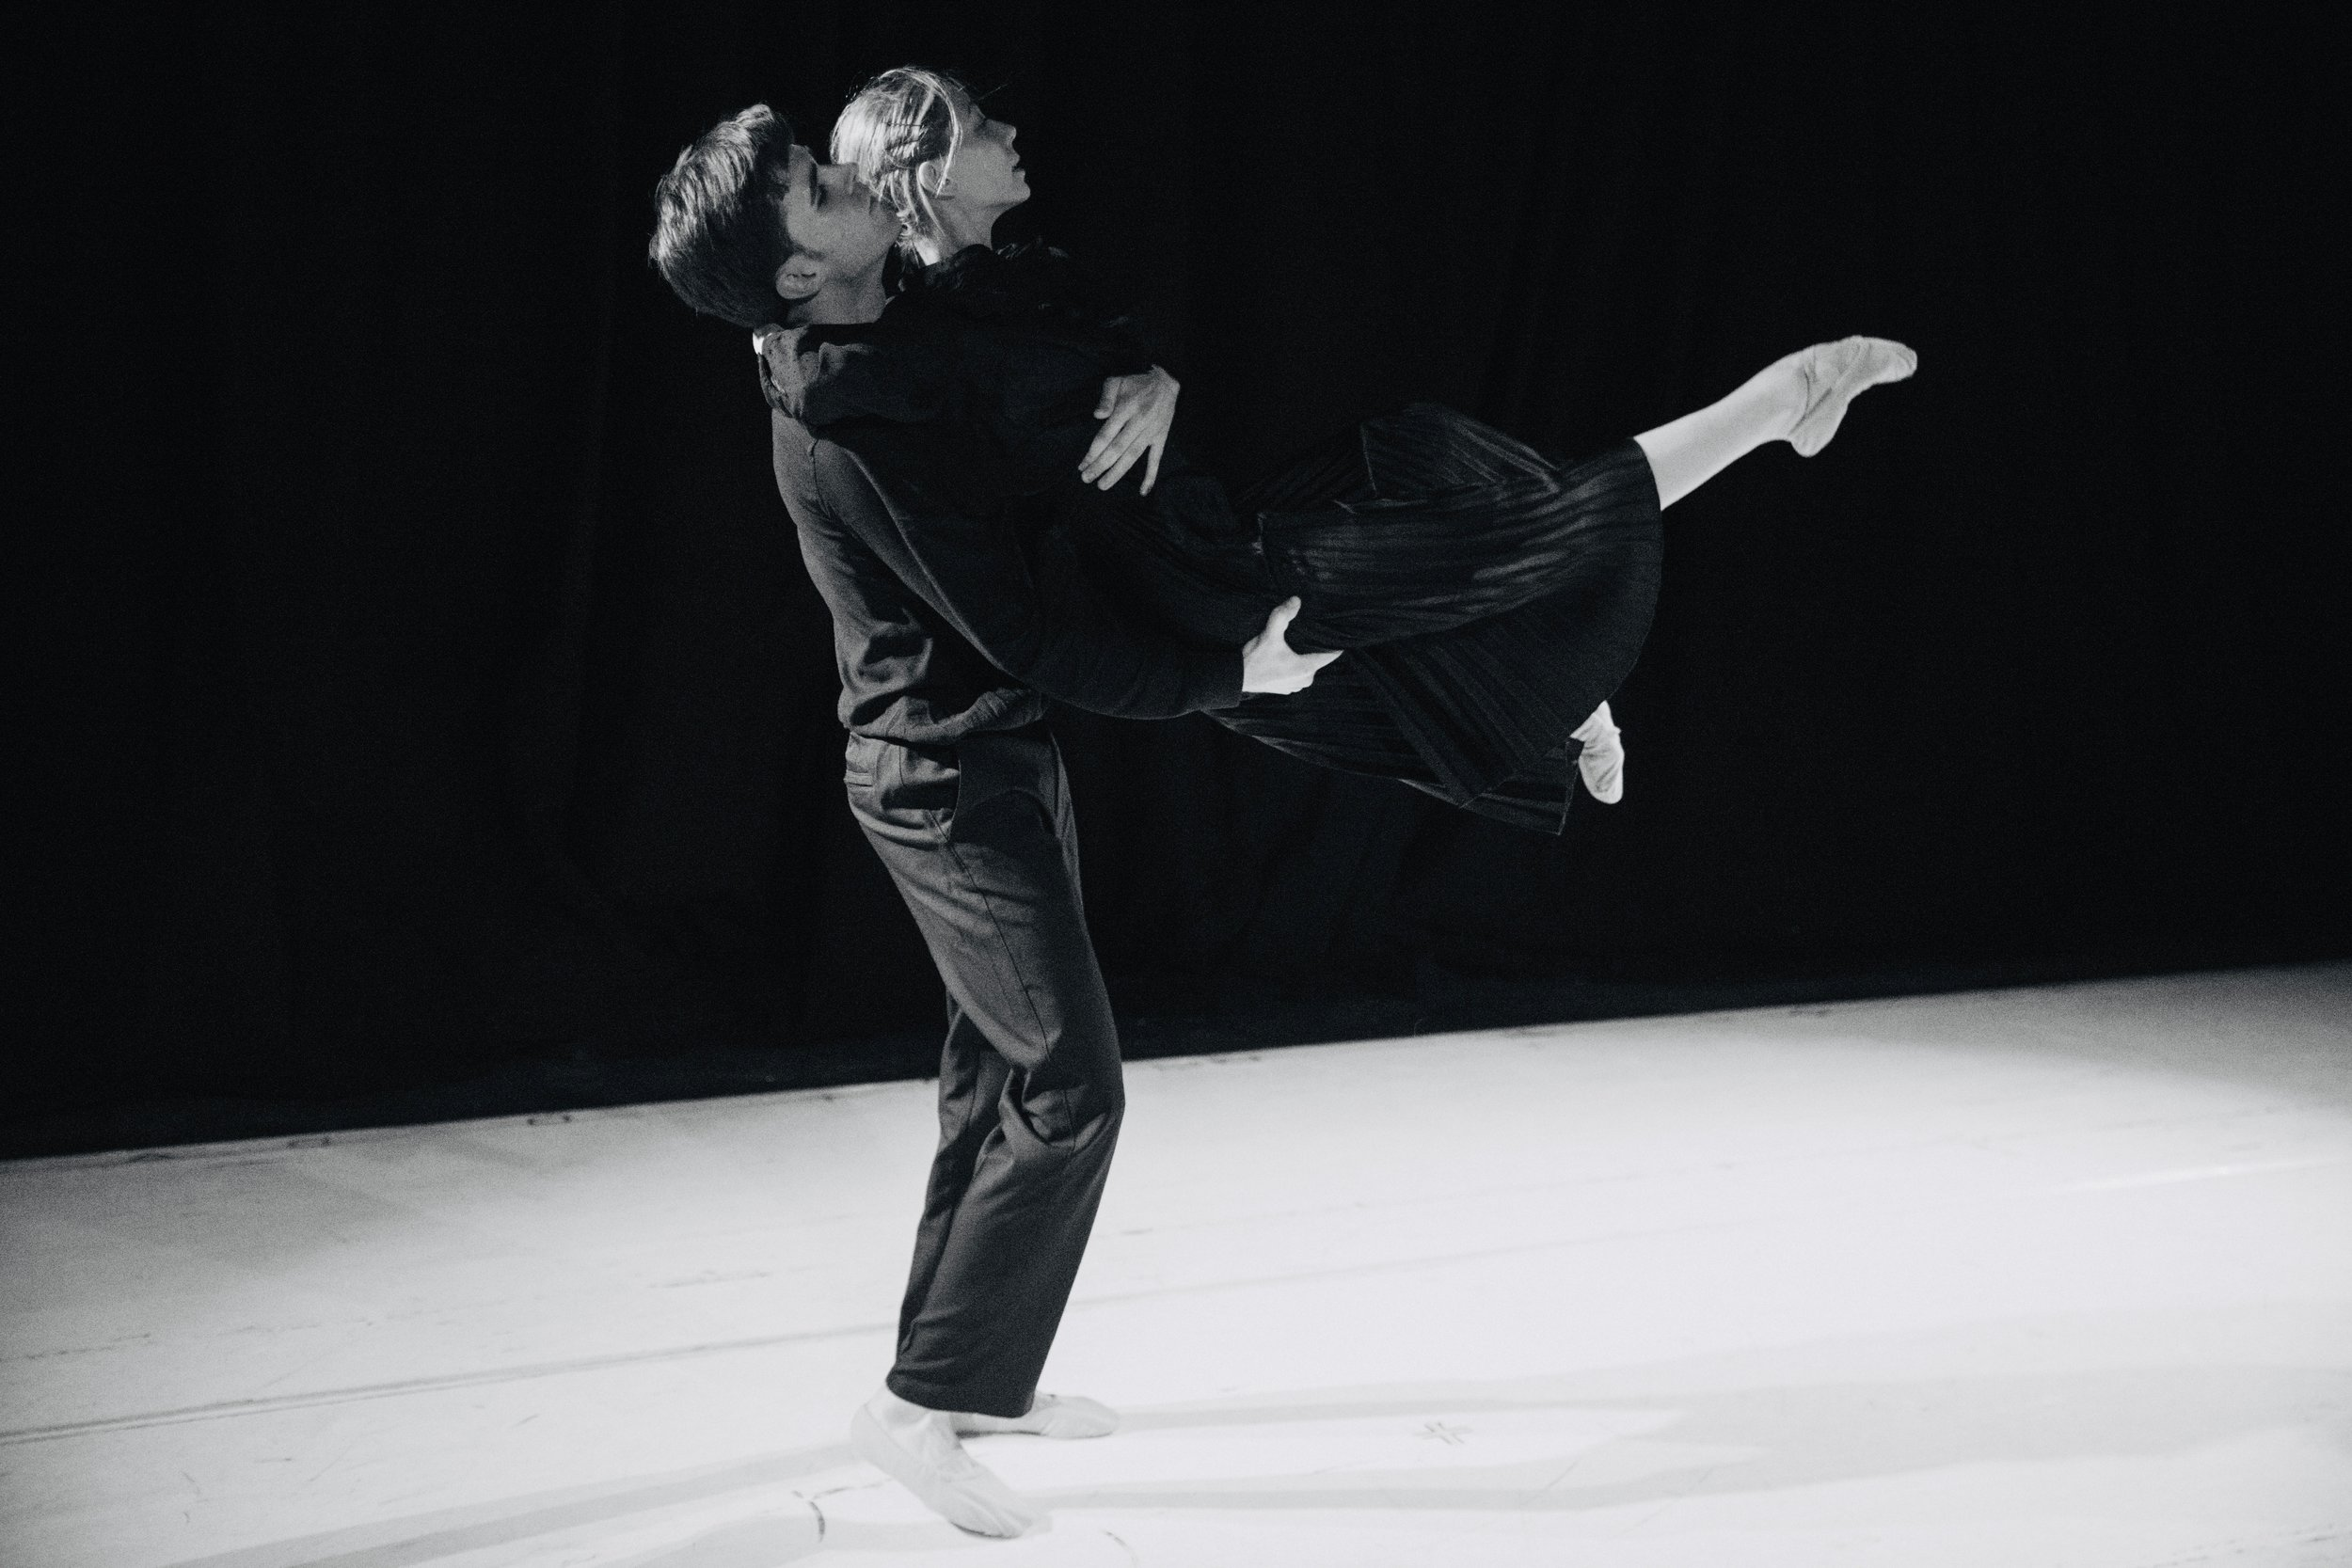 Tangible:[perceptible by touch] - We utilize the physicality of dance to communicate ideas and concepts.